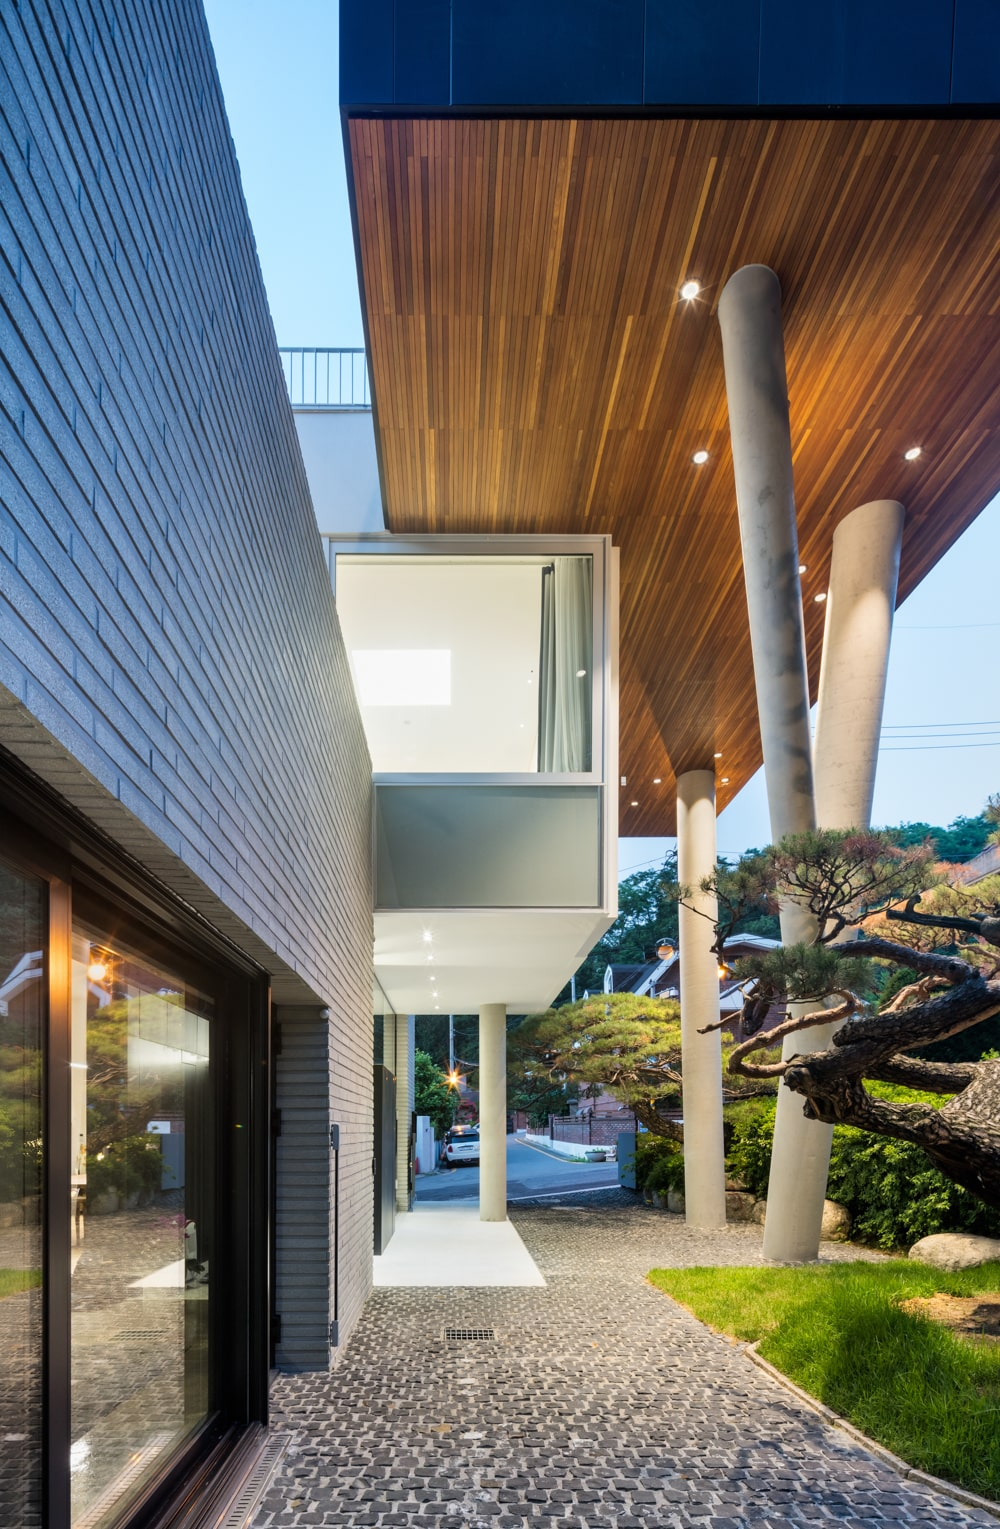 This structure over the main entrance of the house also serves as the cover with a tall wooden ceiling.